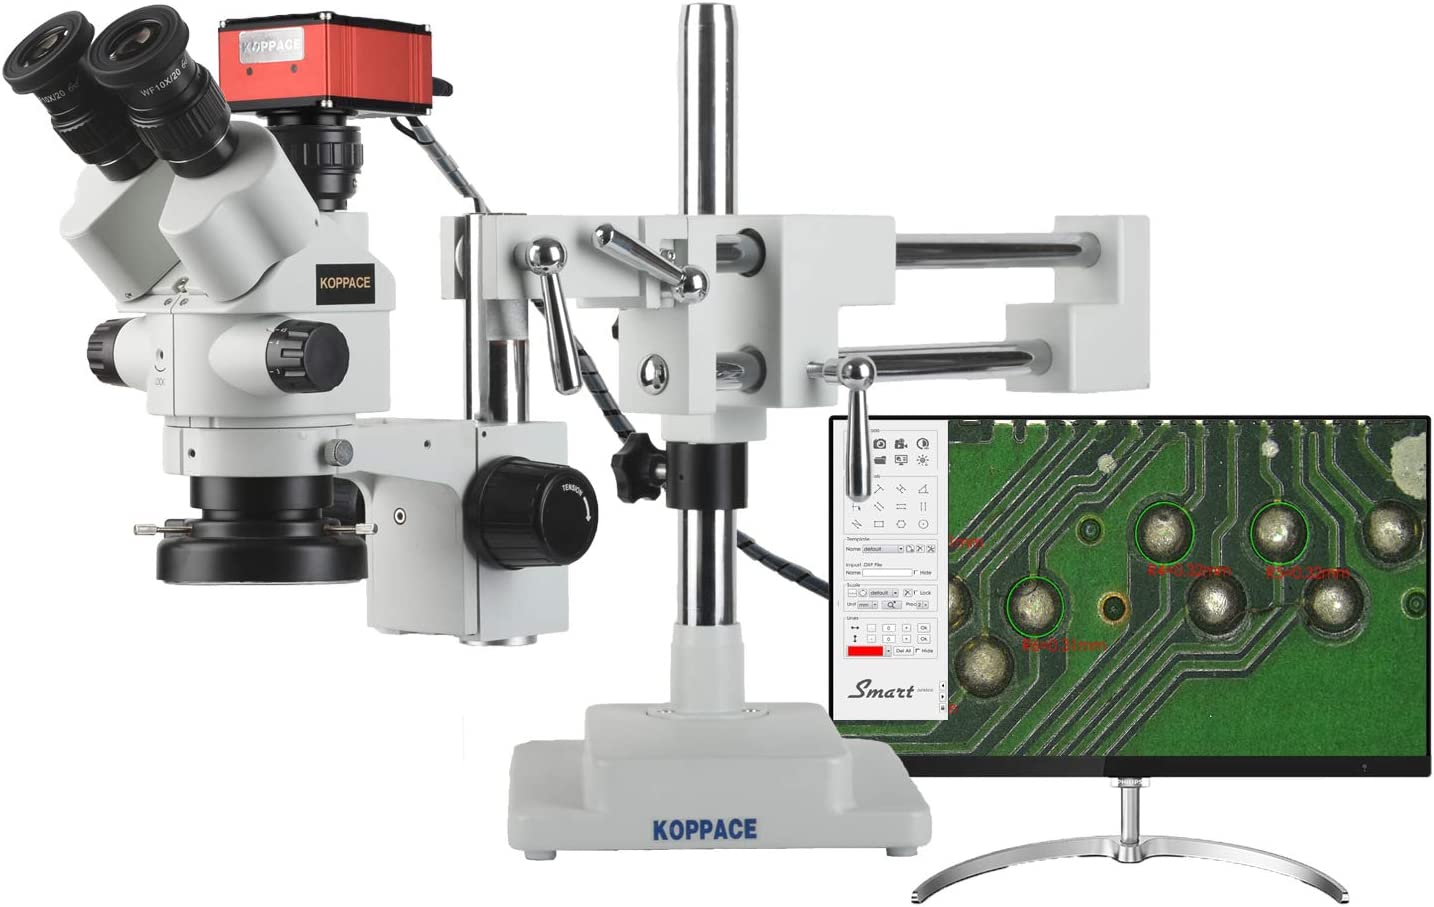 KOPPACE 4K HD Stereo Measurement Microscope 3.5X-180X 4K Pictures and Videos Dual arm Bracket Electron Microscope